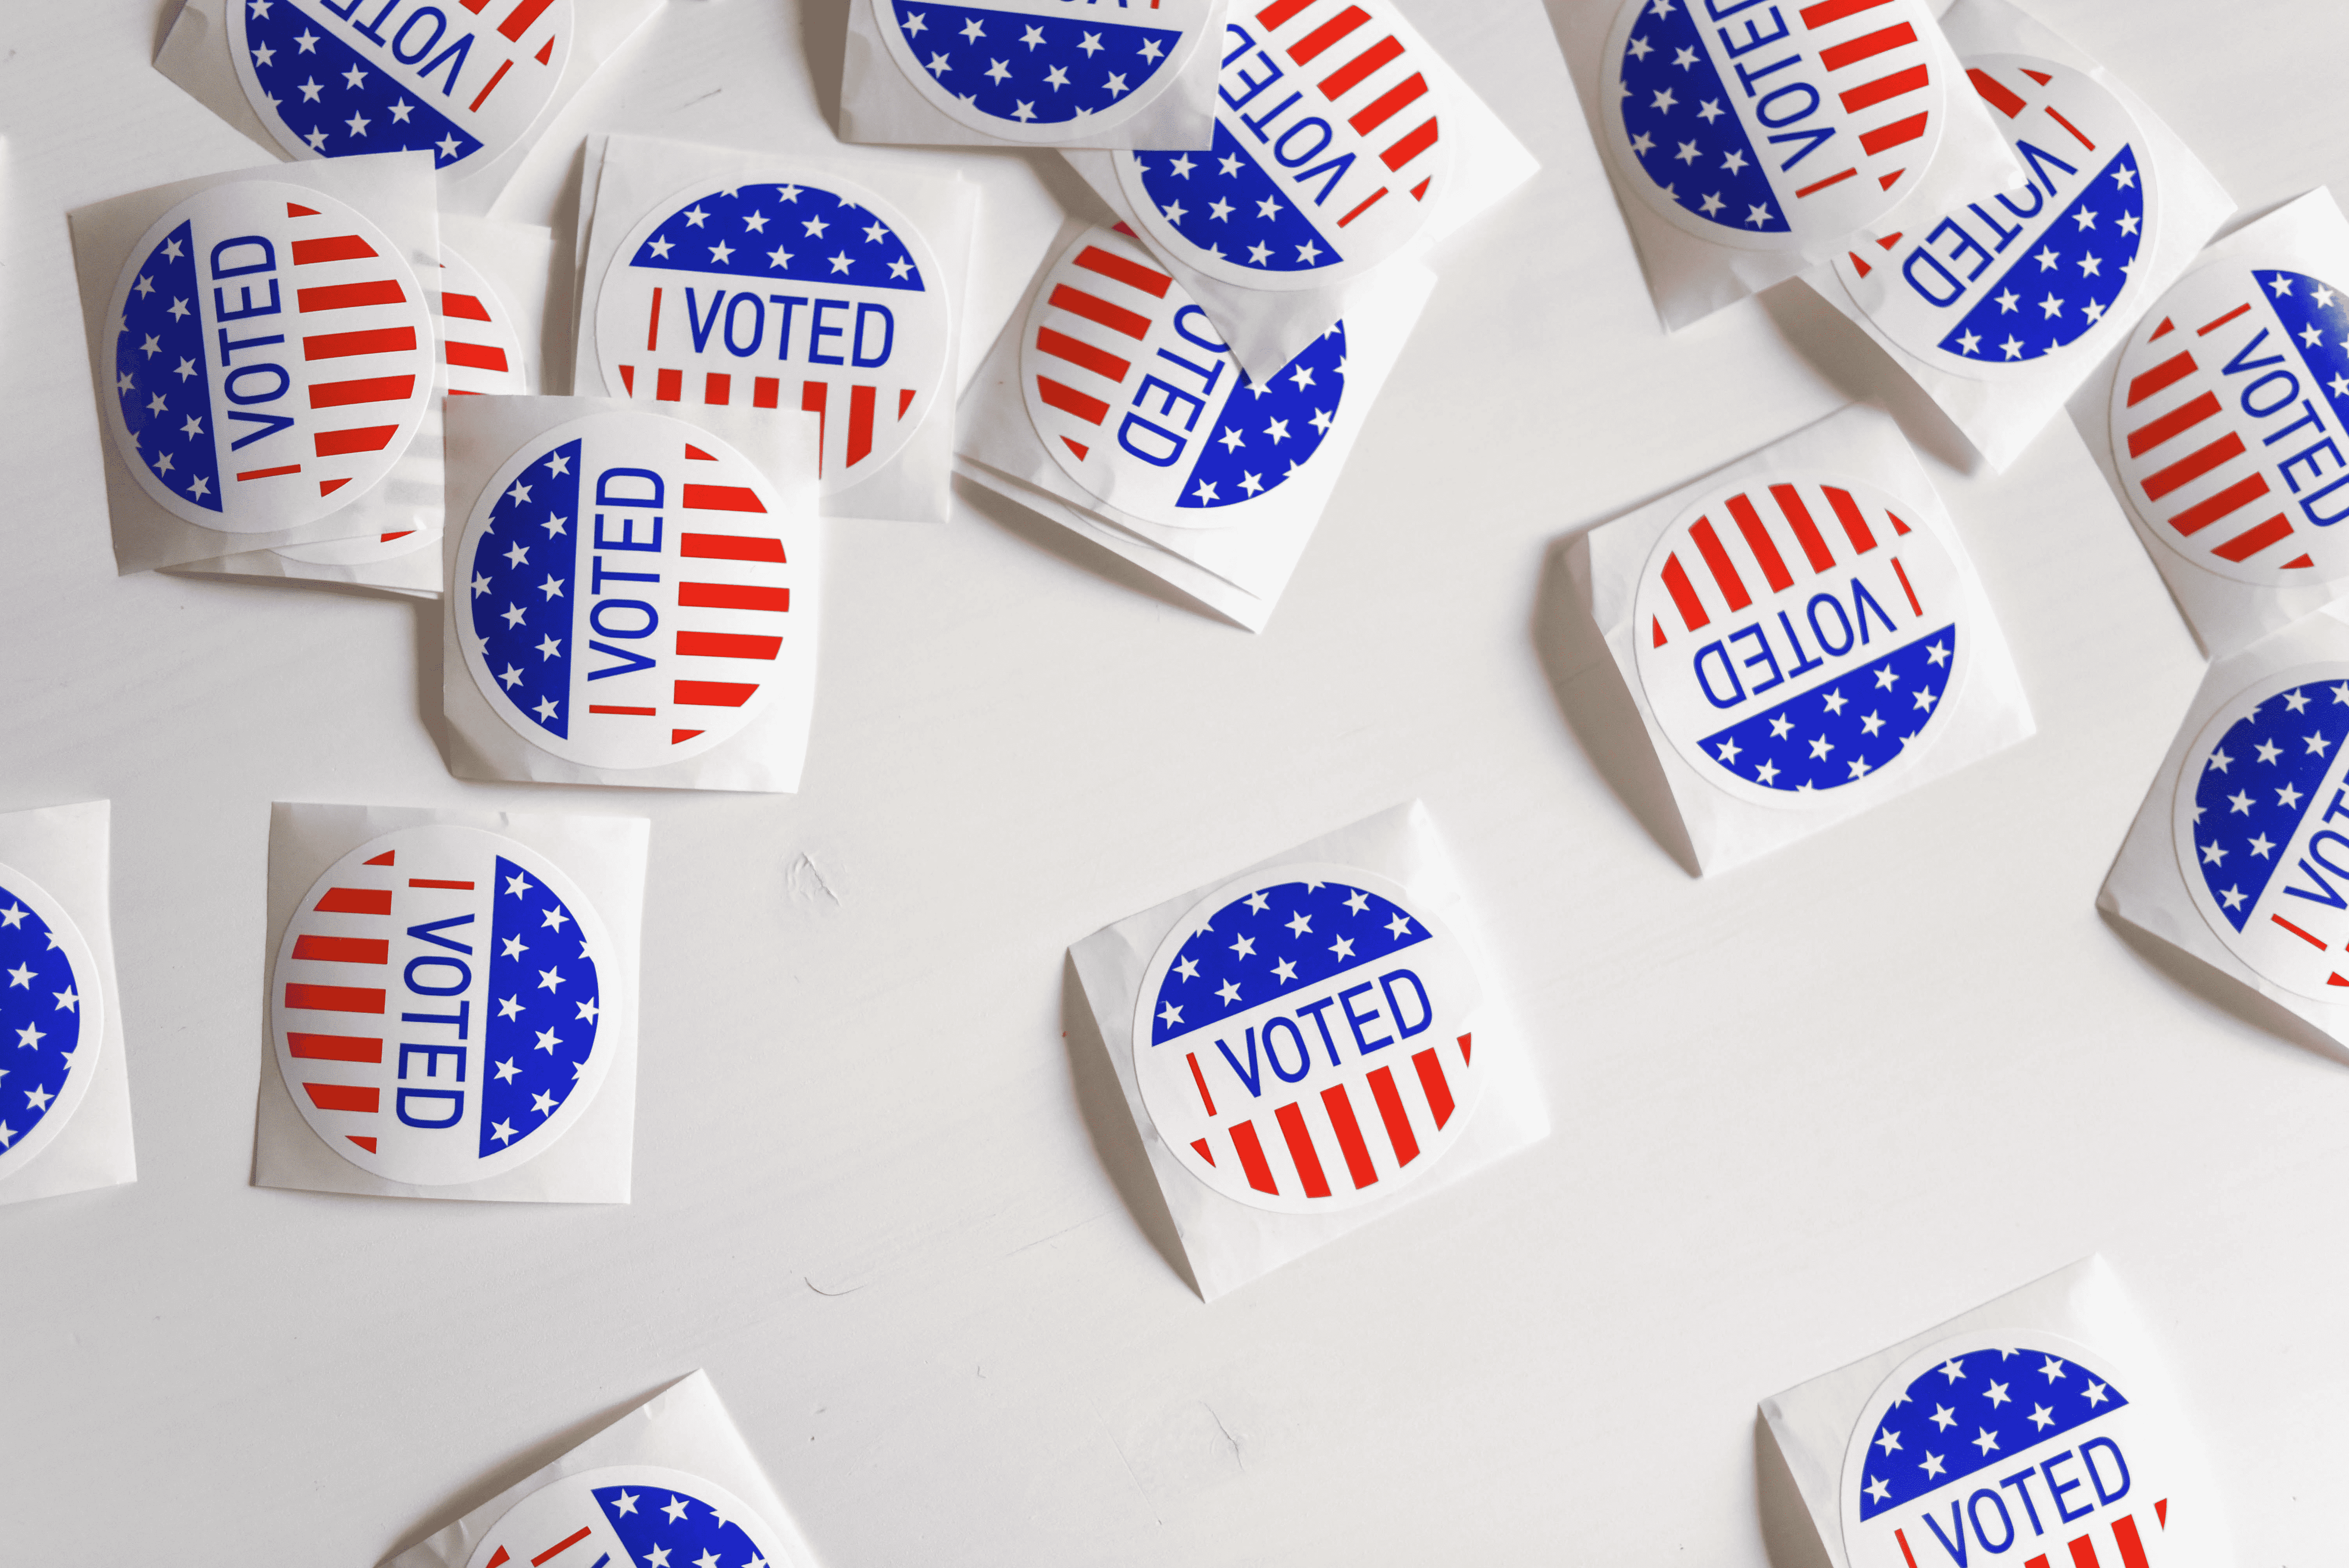 A pile of American 'I Voted' stickers